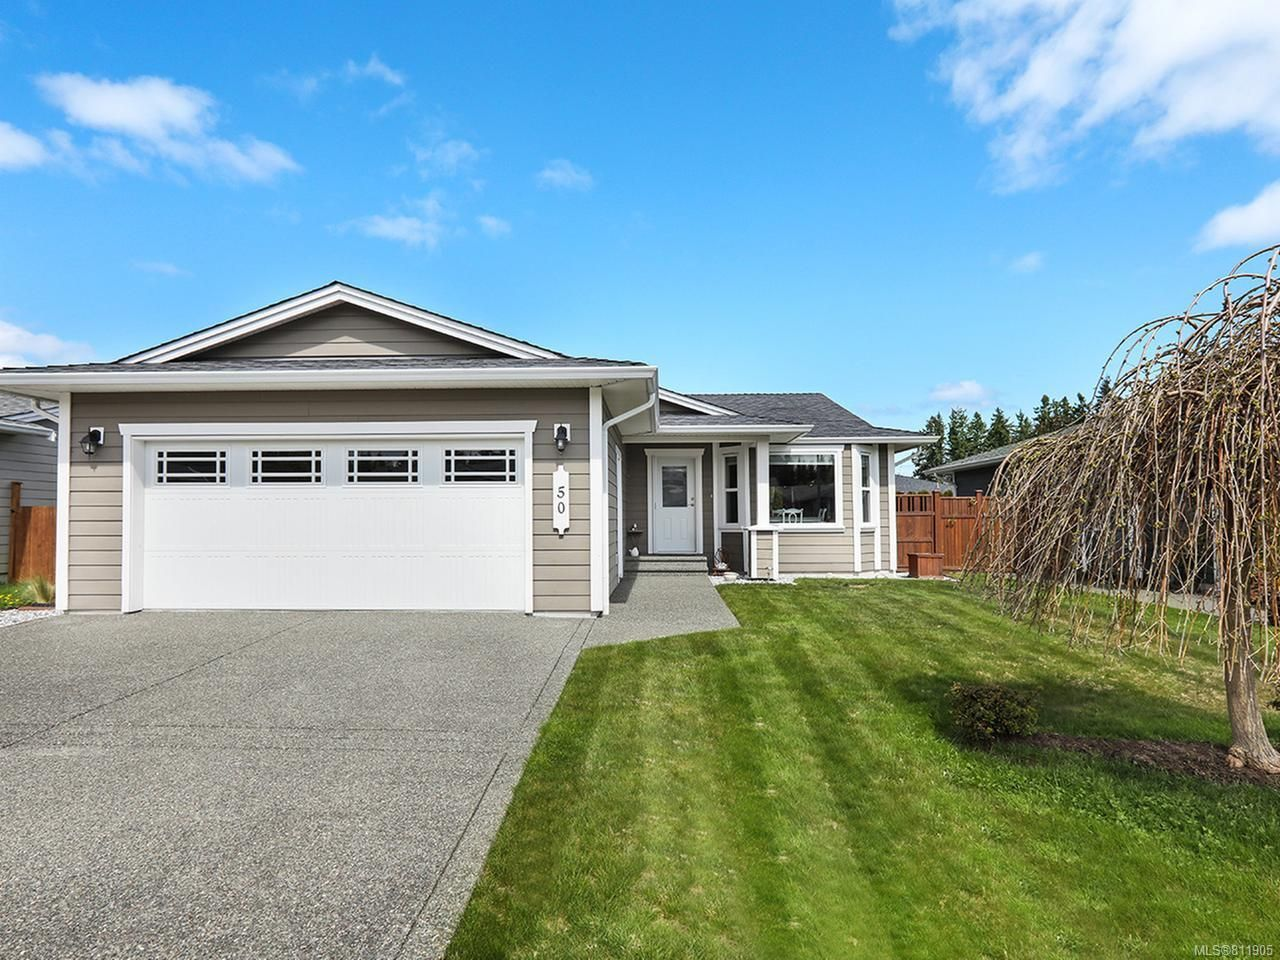 Photo 1: Photos: 50 Carolina Dr in CAMPBELL RIVER: CR Willow Point House for sale (Campbell River)  : MLS®# 811905